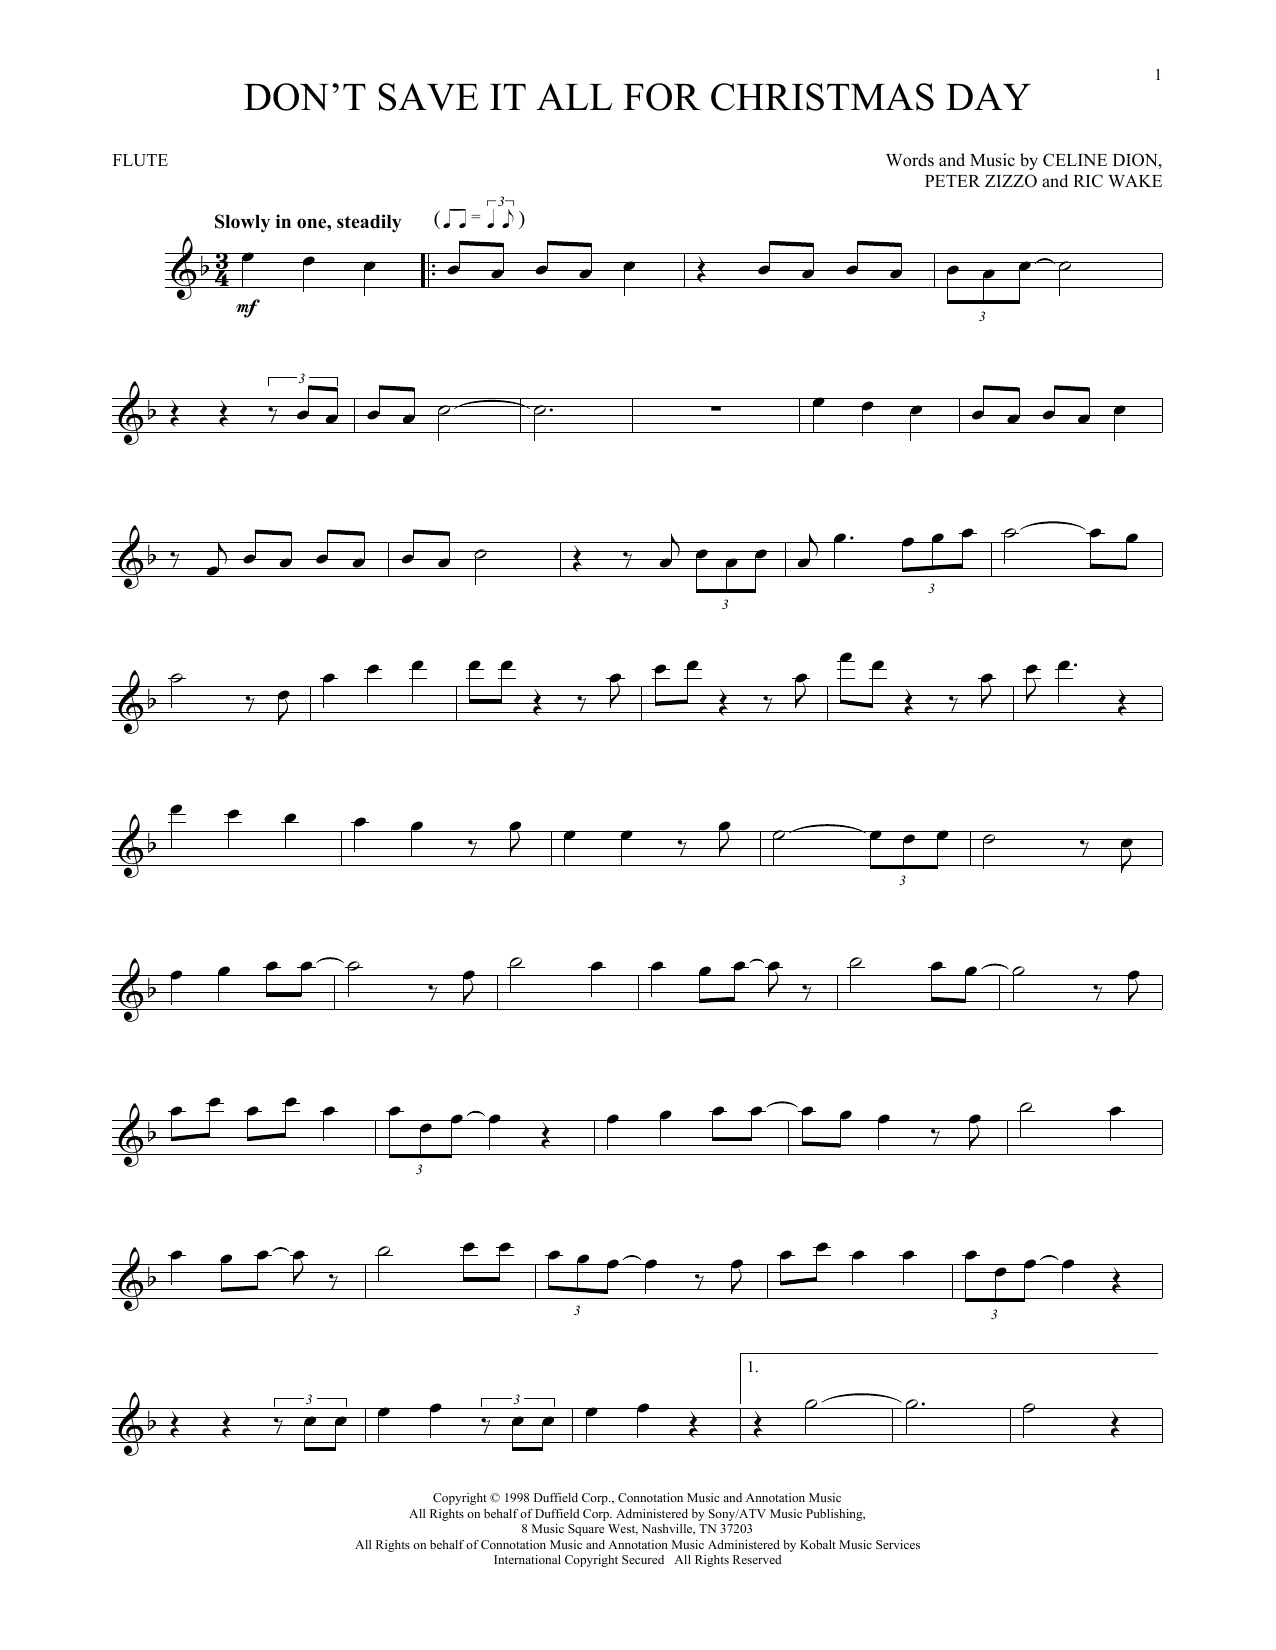 Don't Save It All For Christmas Day (Flute Solo)